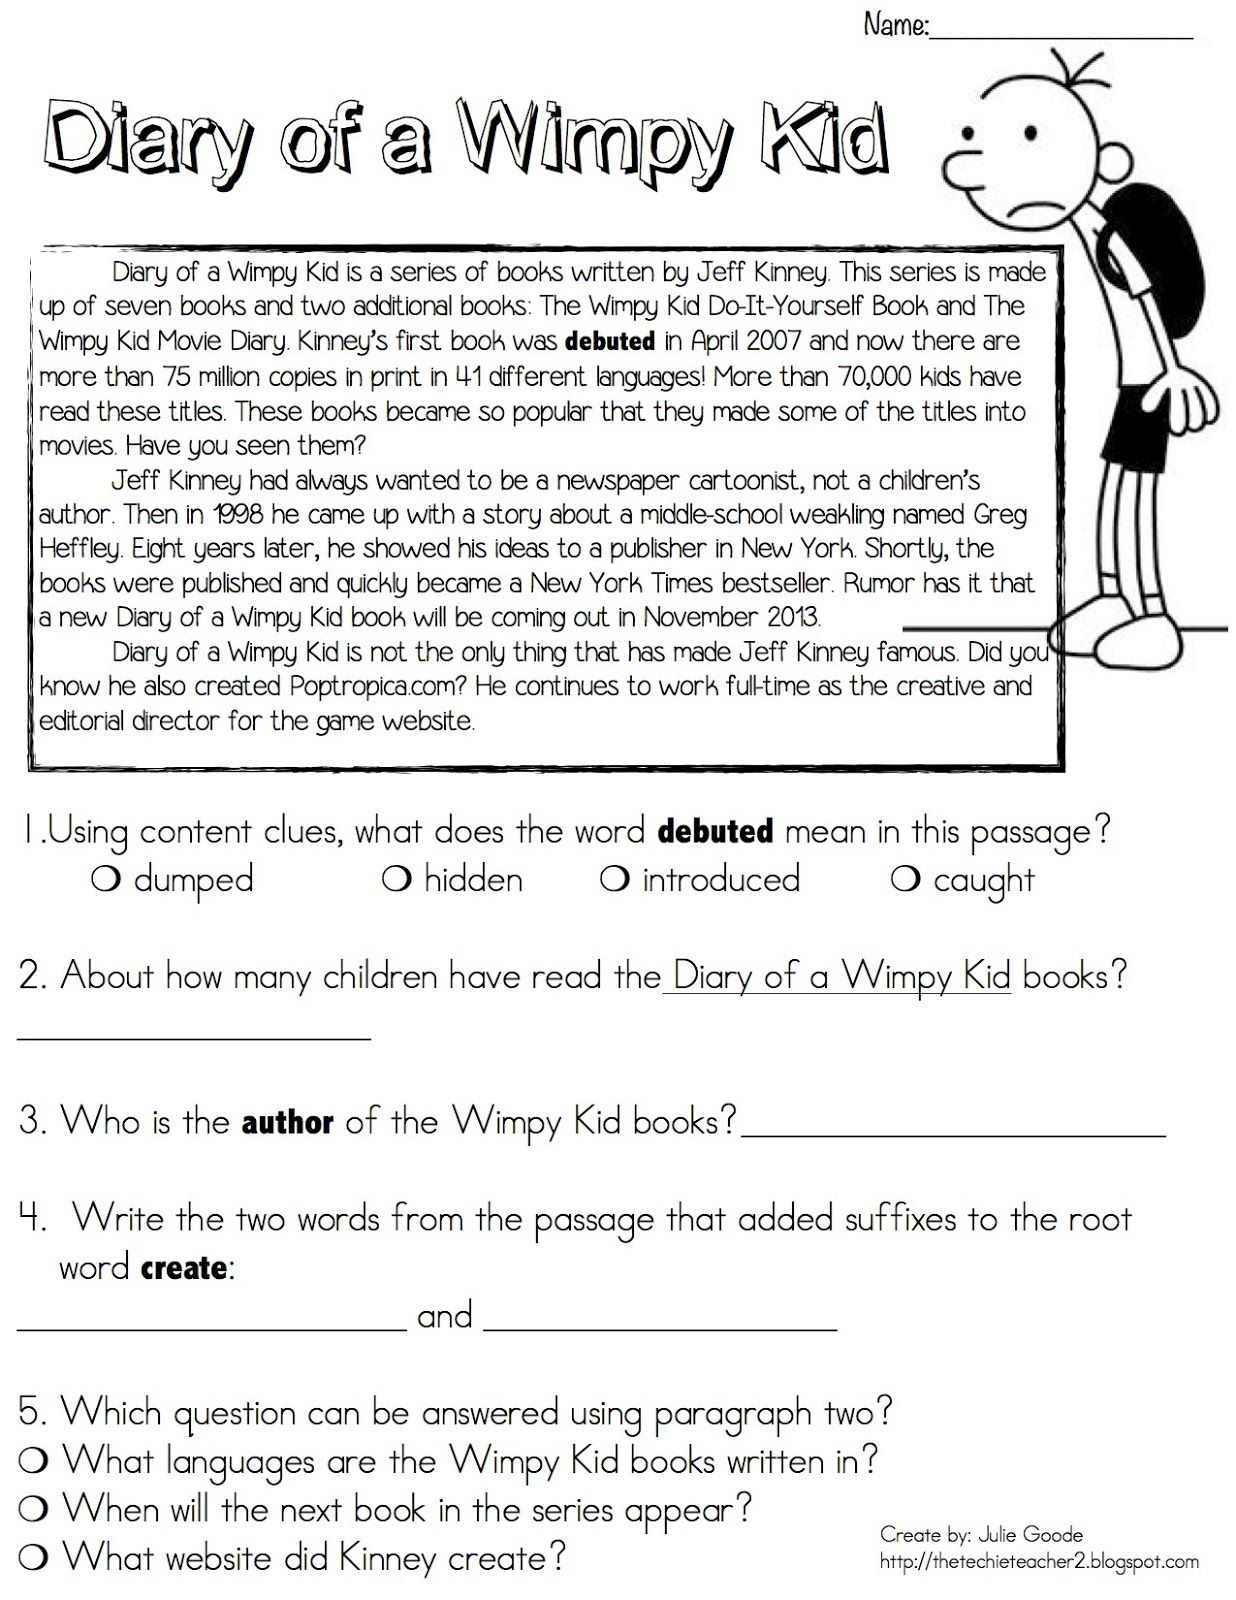 Worksheet 5th Grade Short Reading Passages worksheet reading comprehension for 5th graders mikyu free worksheets grade 1000 images about tina2 on pinterest and morning work